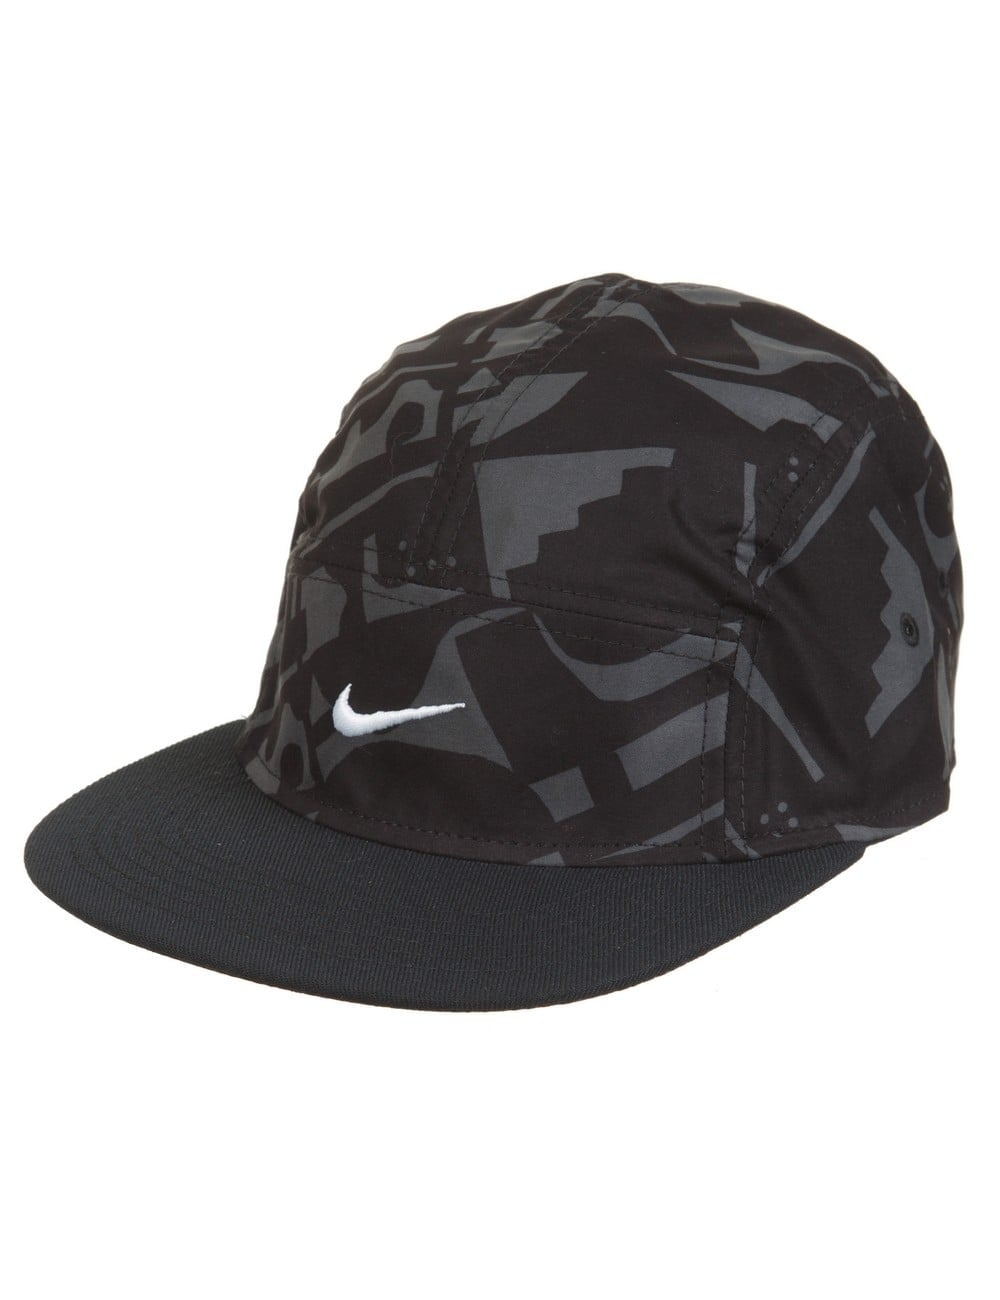 Nike SB Artist 5 Panel Hat - Black - Accessories from Fat Buddha ... 43033b2eada